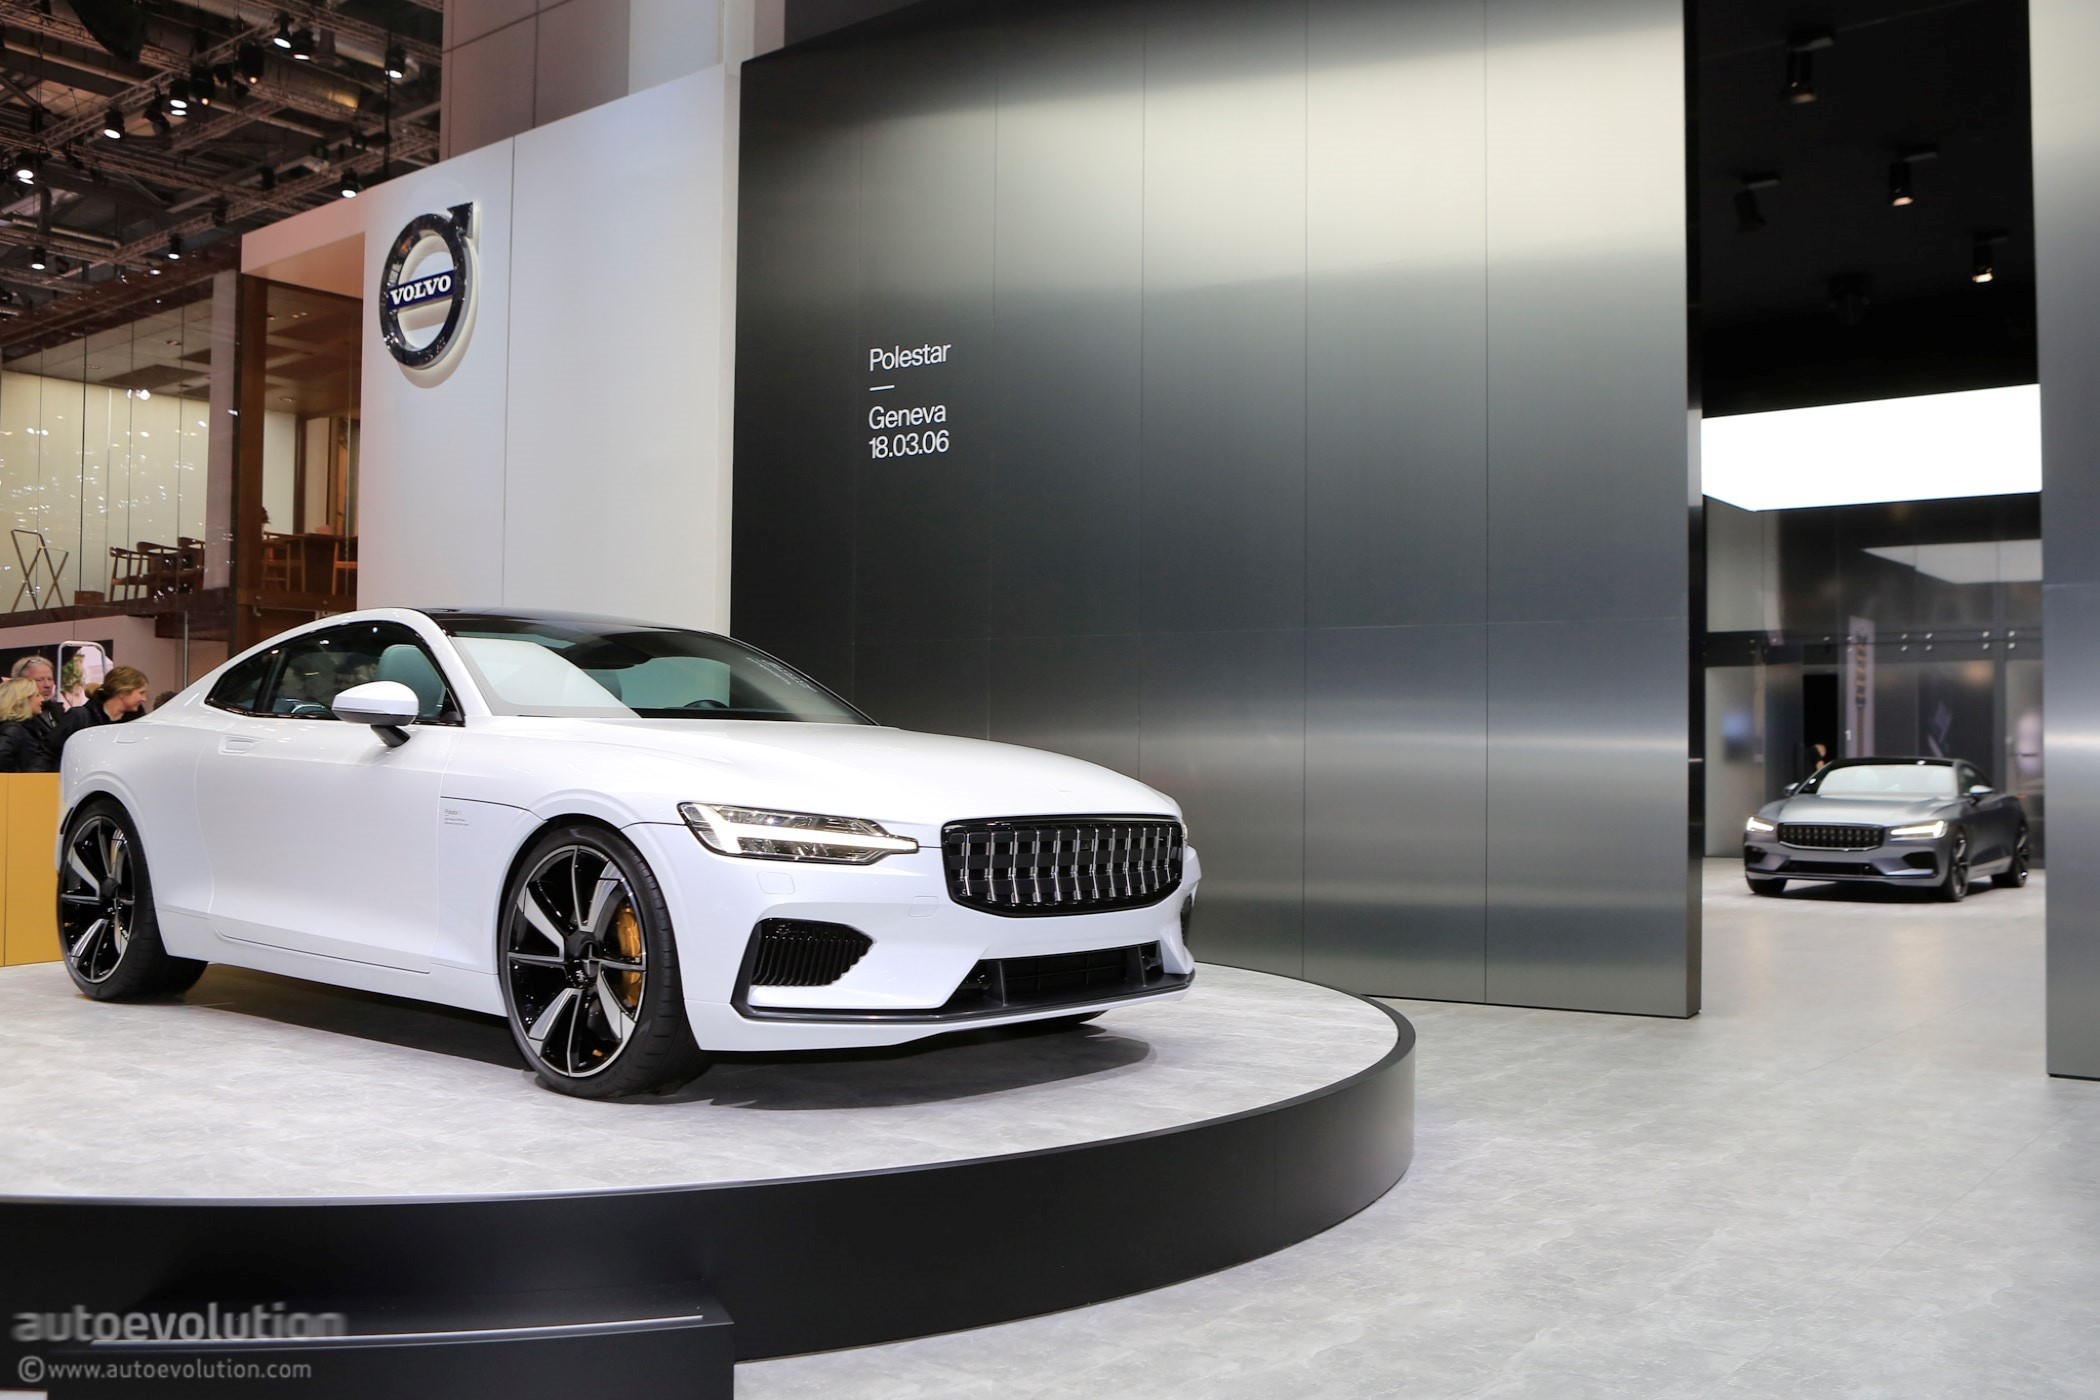 Polestar 1 Goes Live At The 2018 Geneva Motor Show Wearing Matte Gray Paint - autoevolution